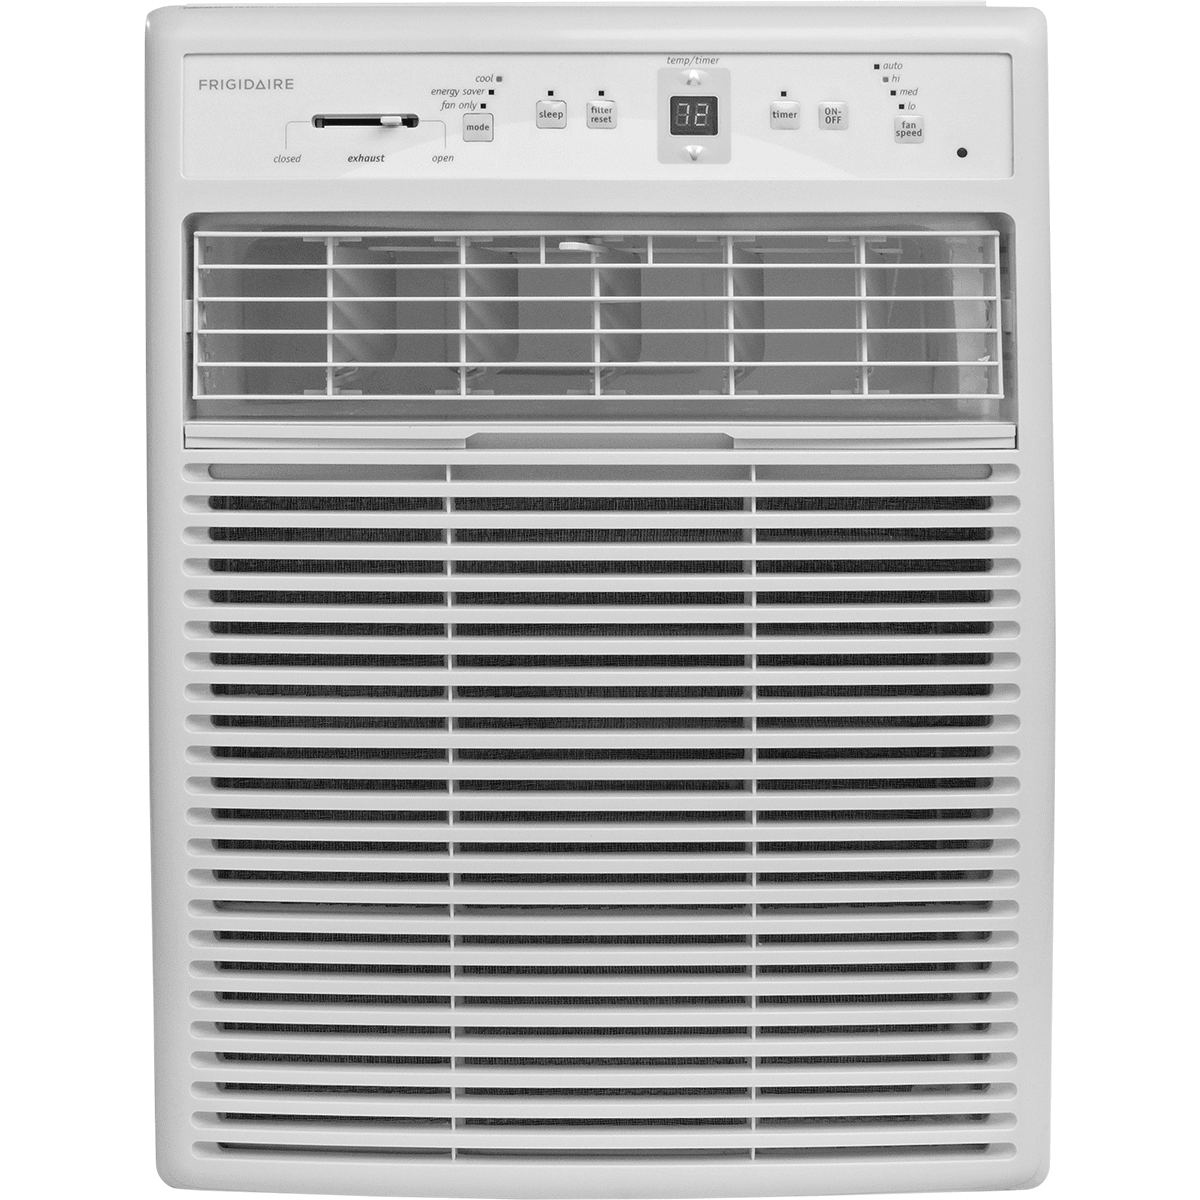 Frigidaire FFRS0822S1 8,000 BTU Casement Window Air Conditioner